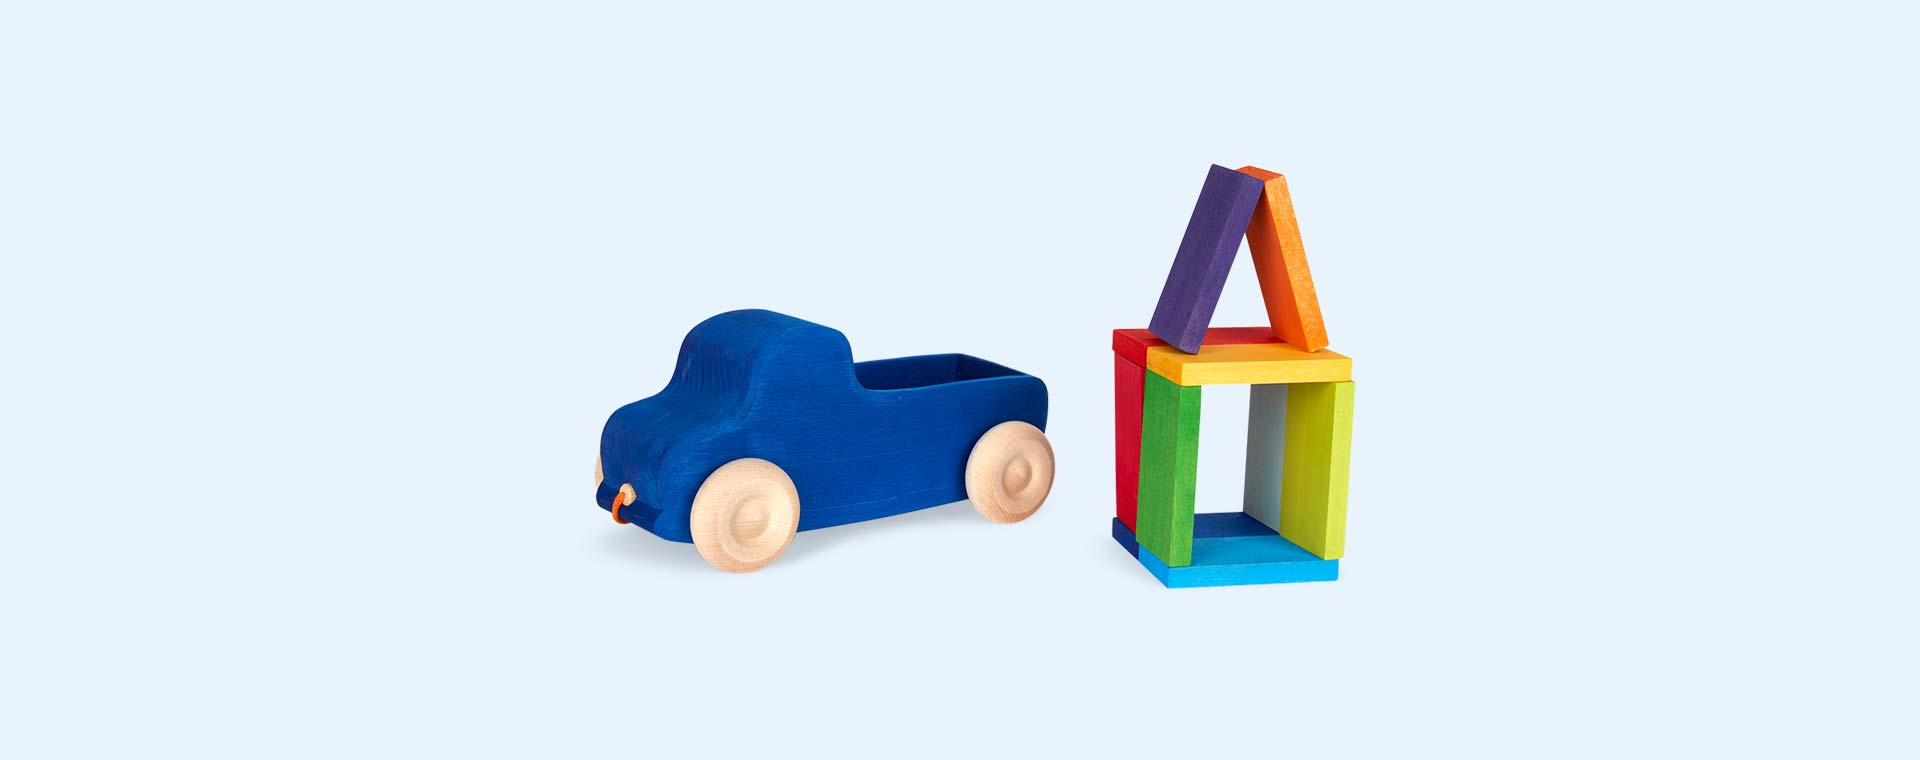 Blue Grimm's Blue Truck Pull Toy